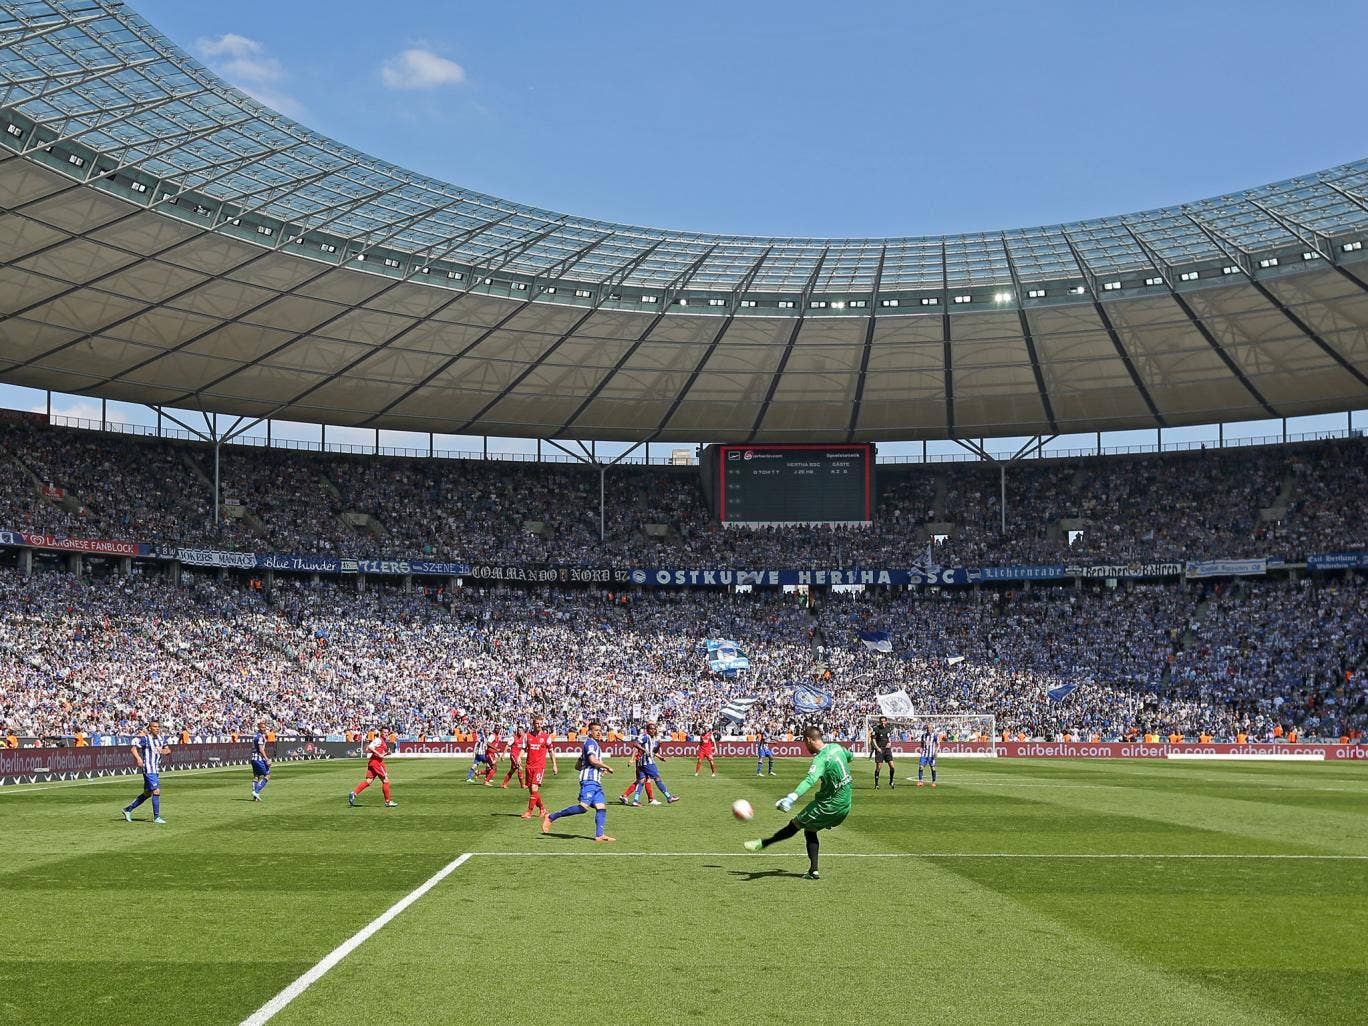 A view of the Olympic Stadium in Berlin